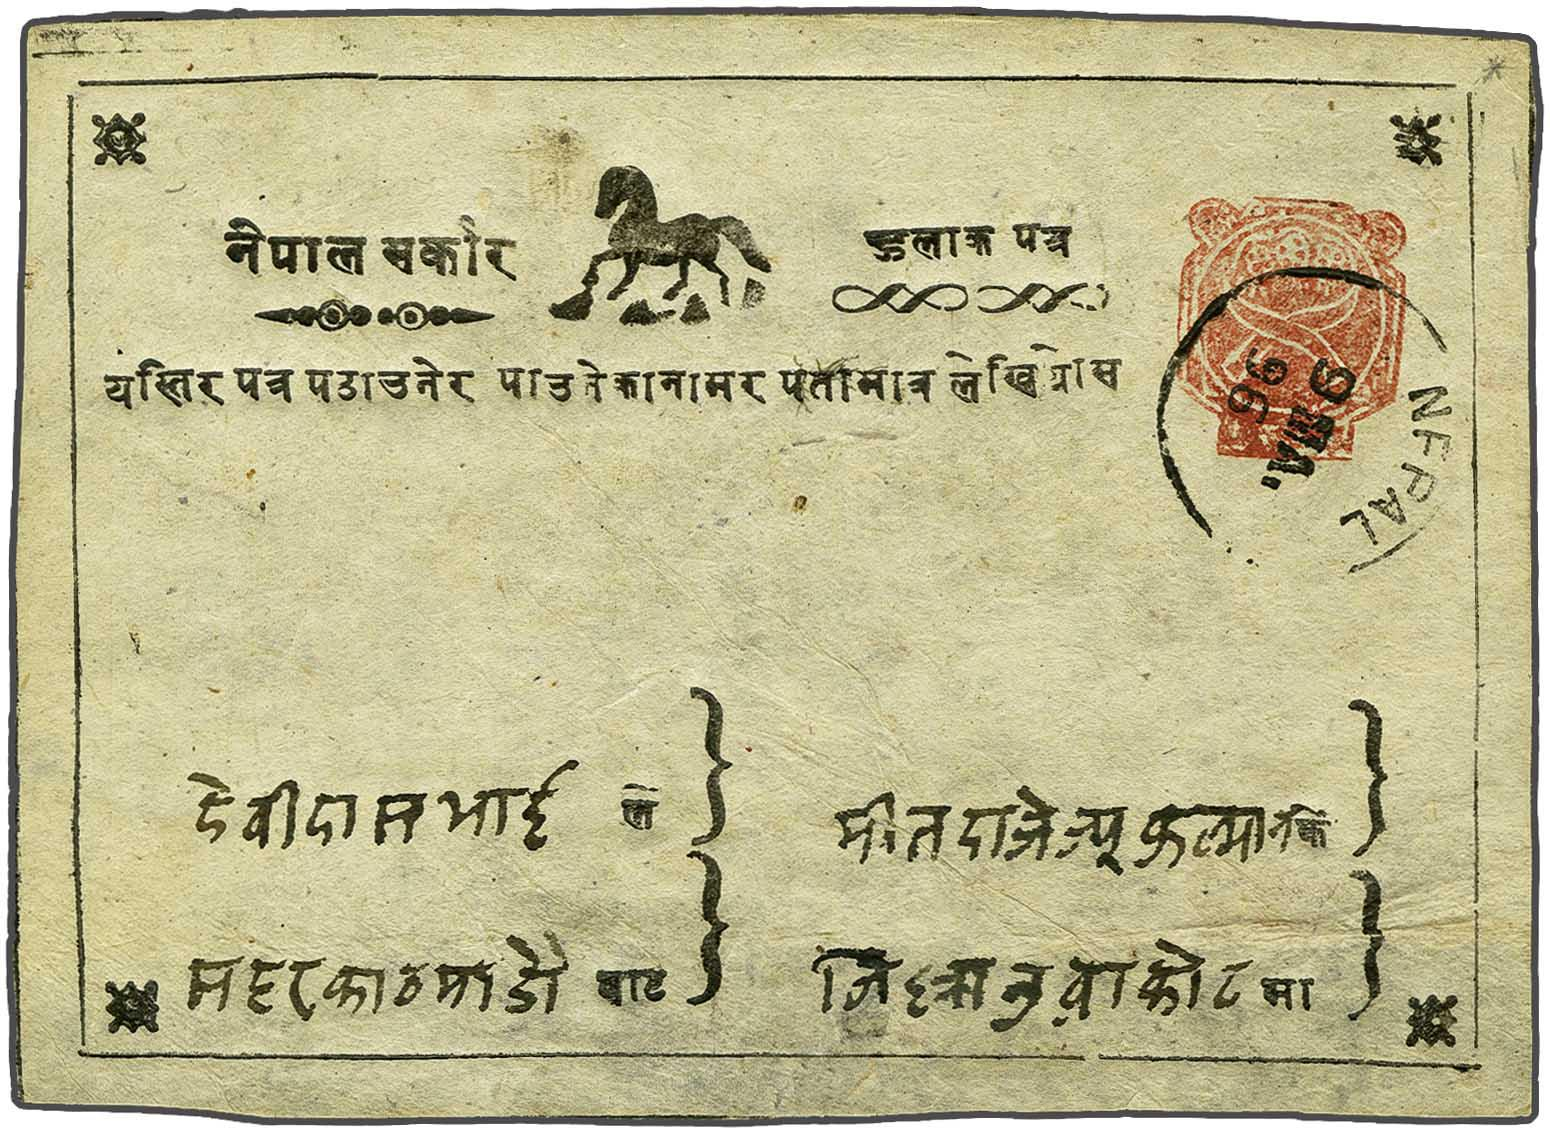 Lot 23 - Great Britain and former colonies Nepal -  Corinphila Veilingen Auction 245-246 Day 1 - Nepal - The Dick van der Wateren Collection, Foreign countries - Single lots, Picture postcards